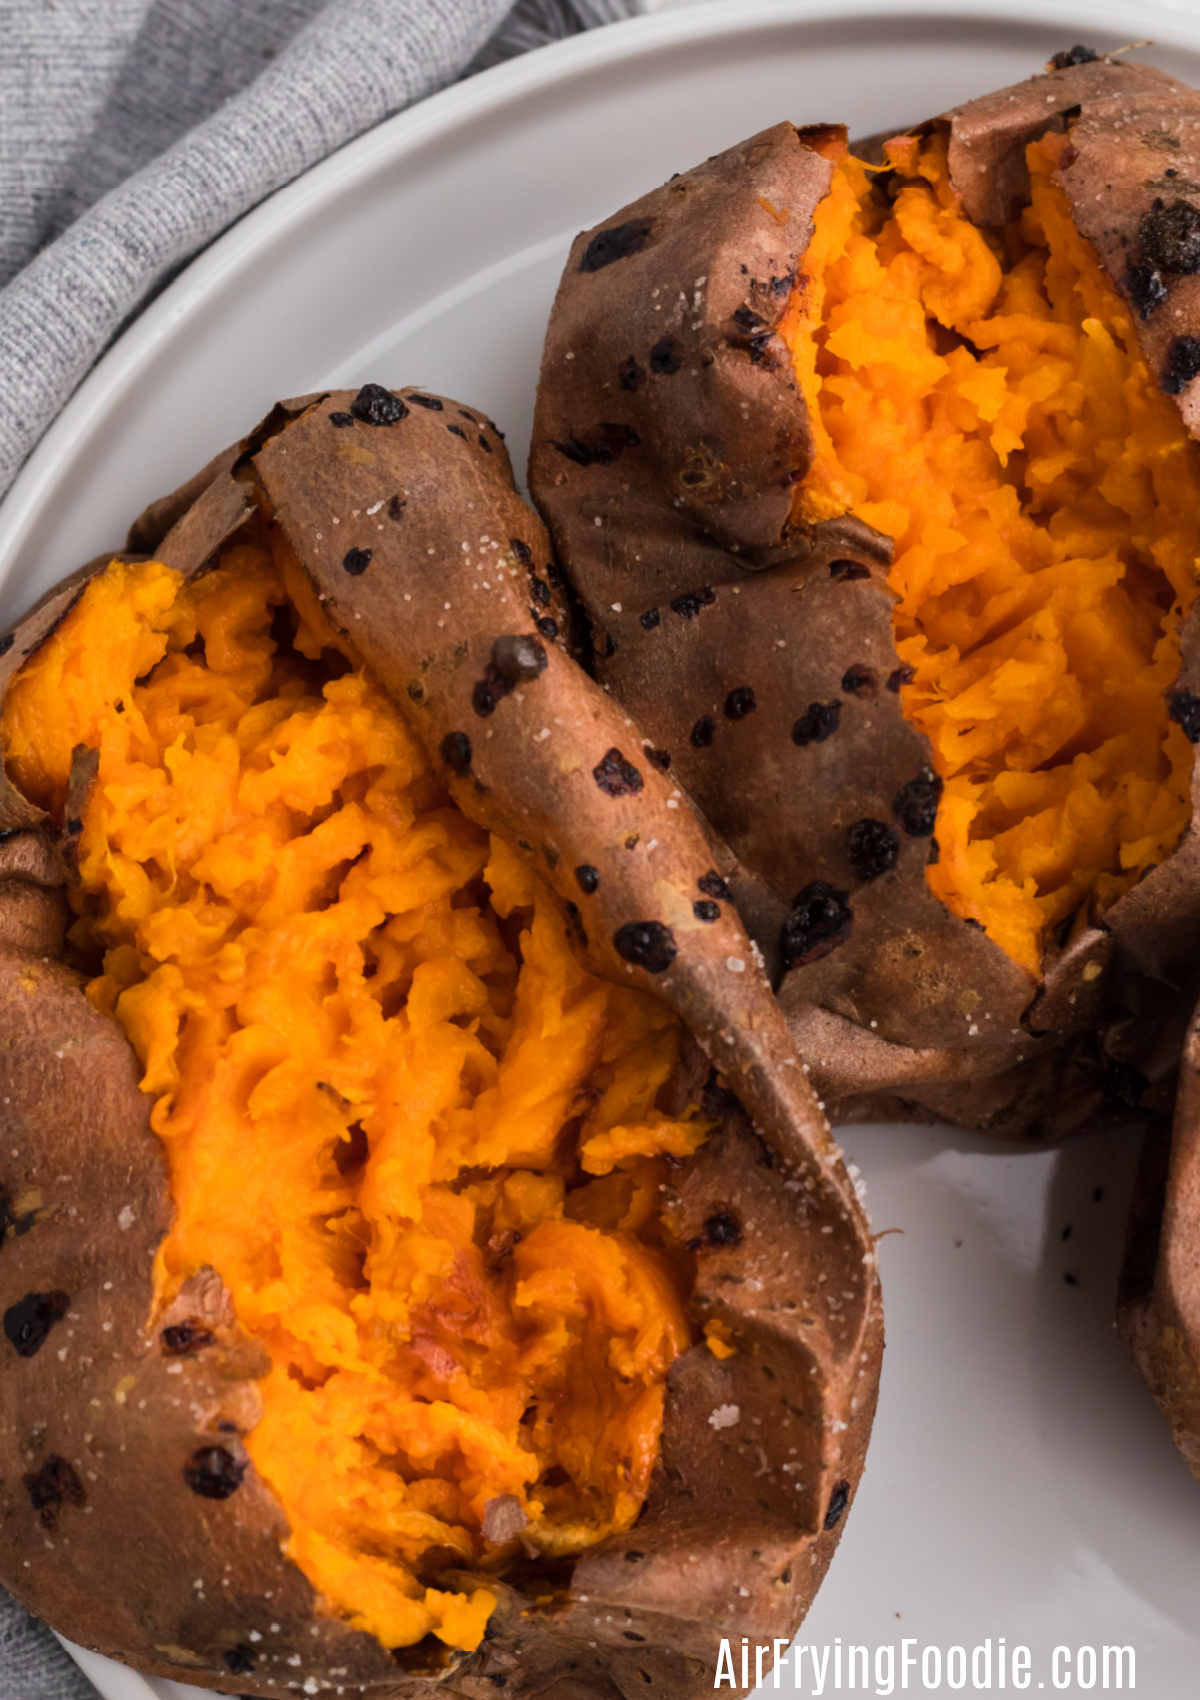 Cooked and sliced baked sweet potatoes made in the air fryer.